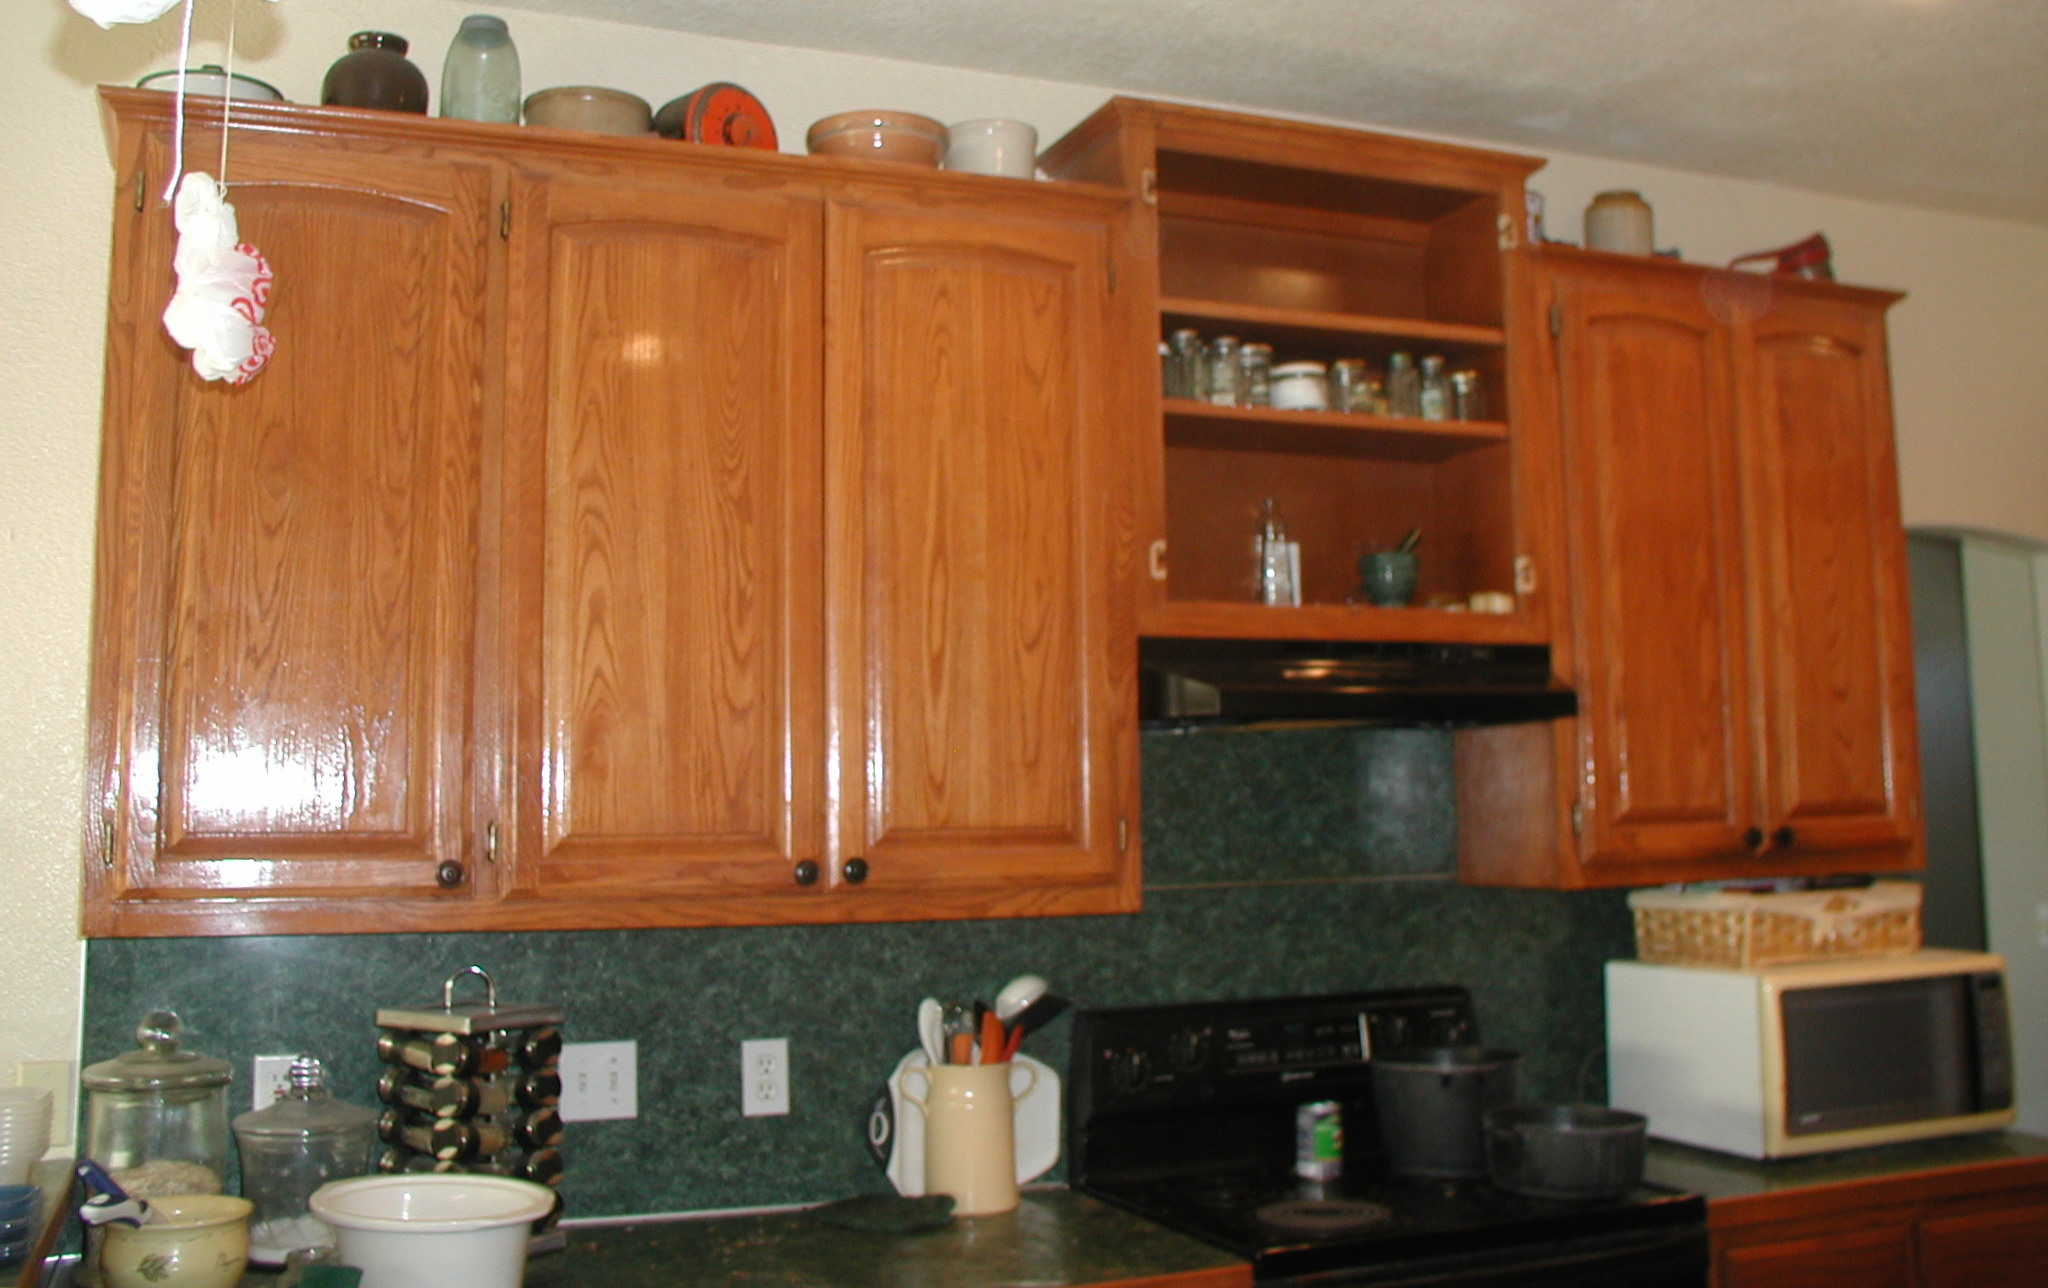 Crown Moulding Above Kitchen Cabinets Kitchen Before Upper Cabinets Stove Wall